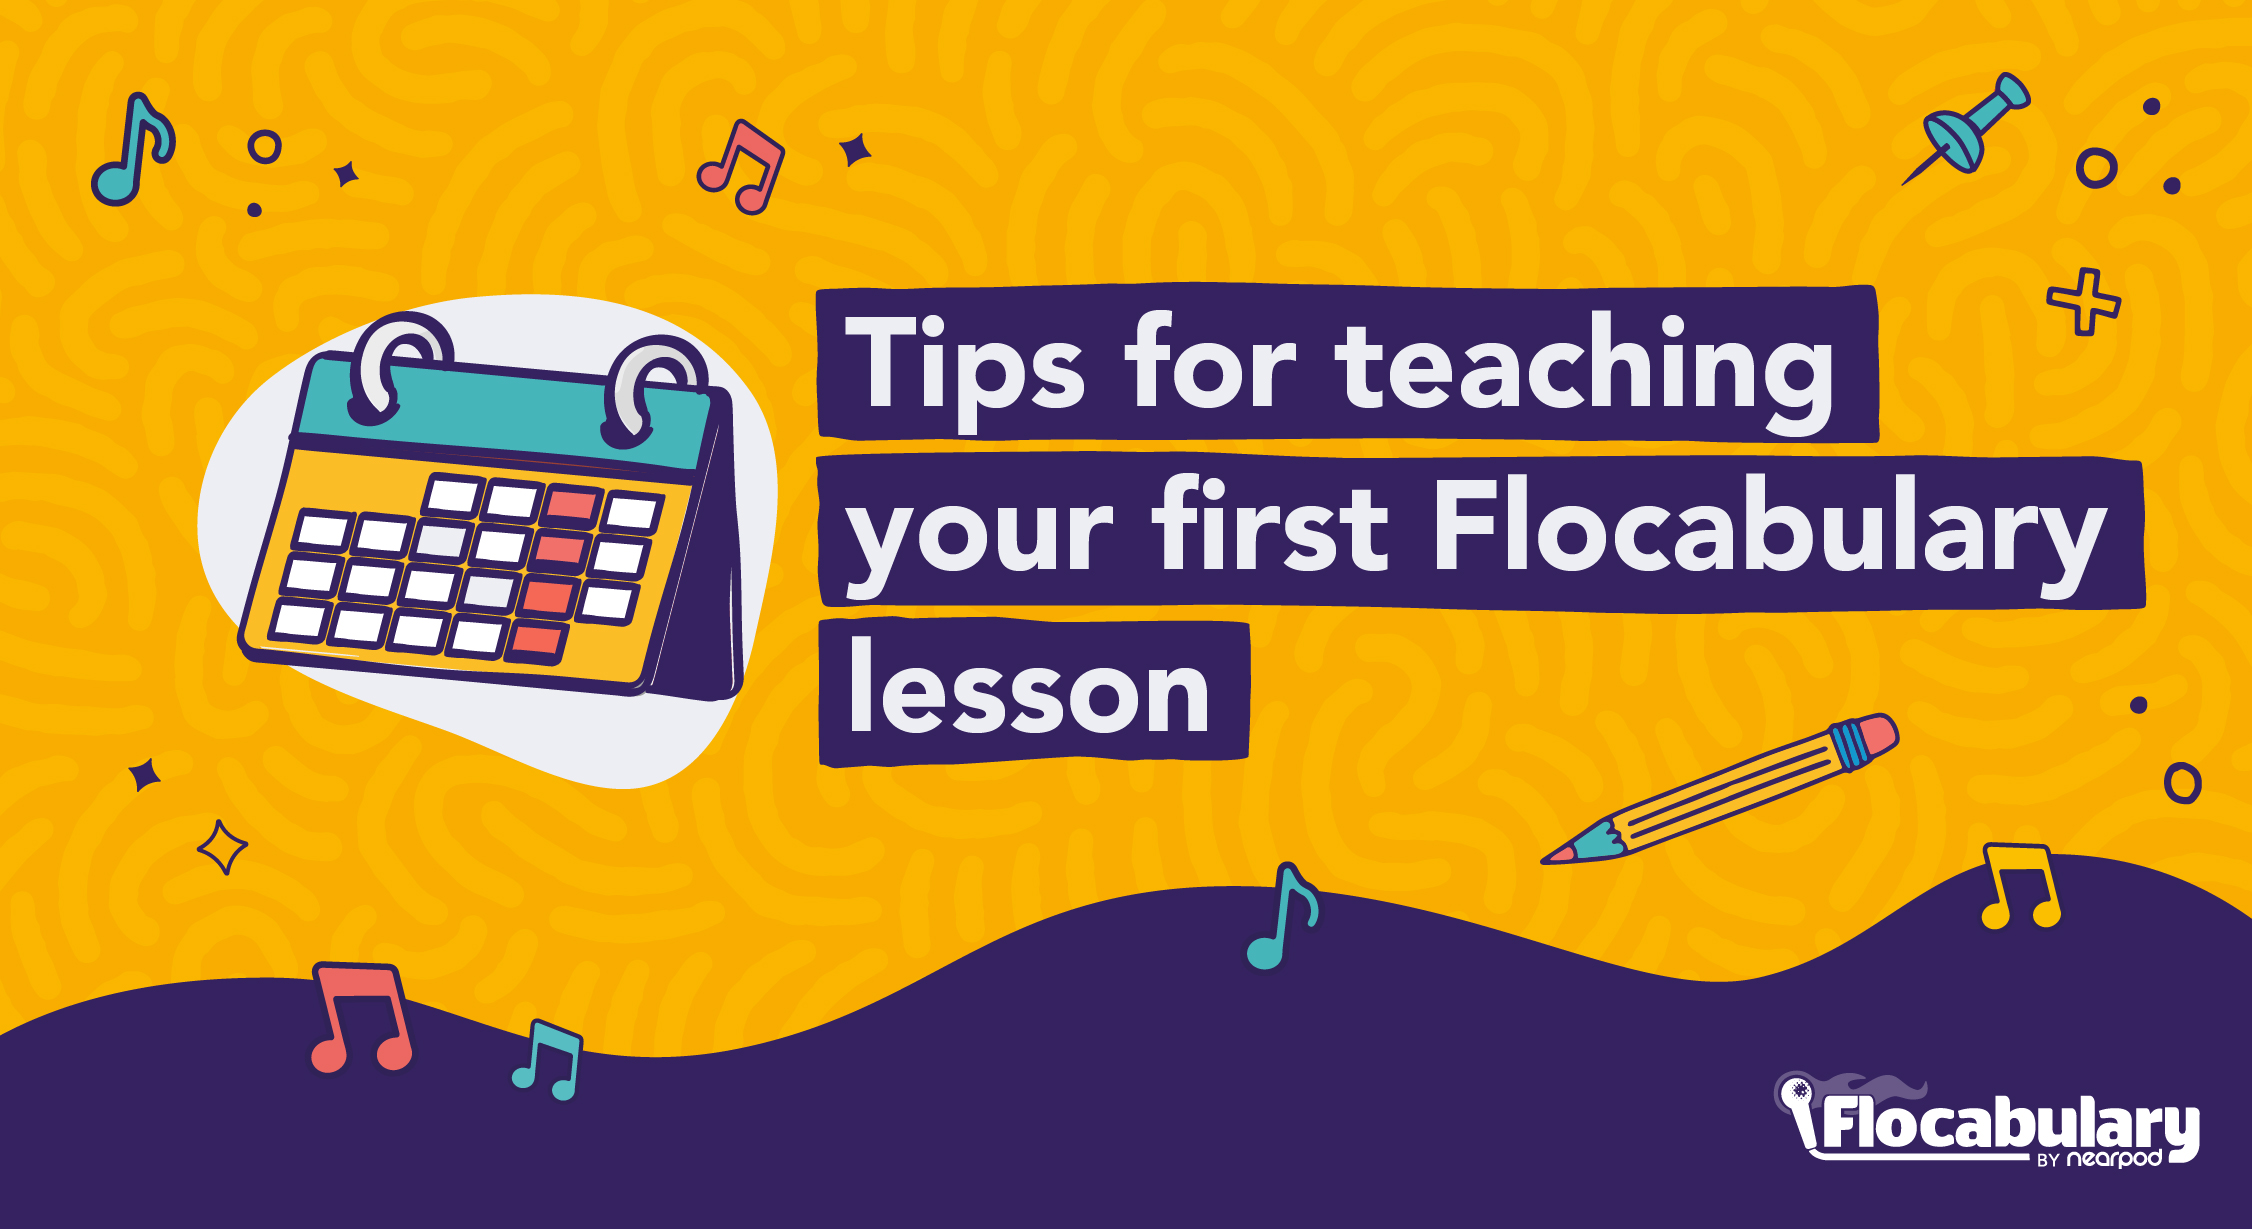 Tips For Teaching Your First Flocabulary Lesson Blog (1)